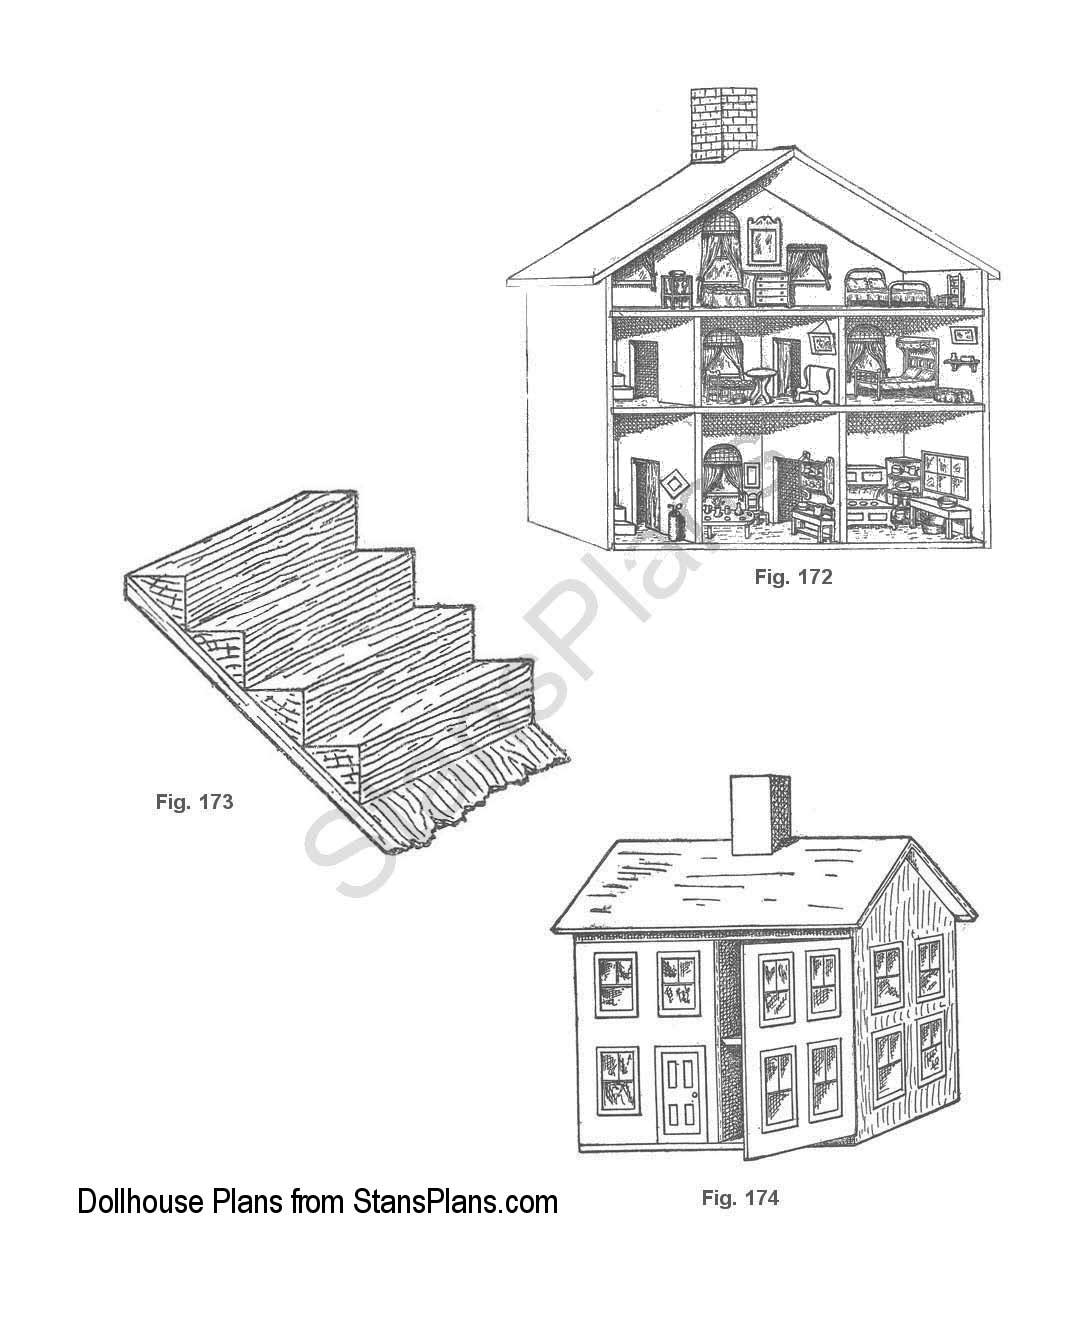 Dollhouse Blueprints